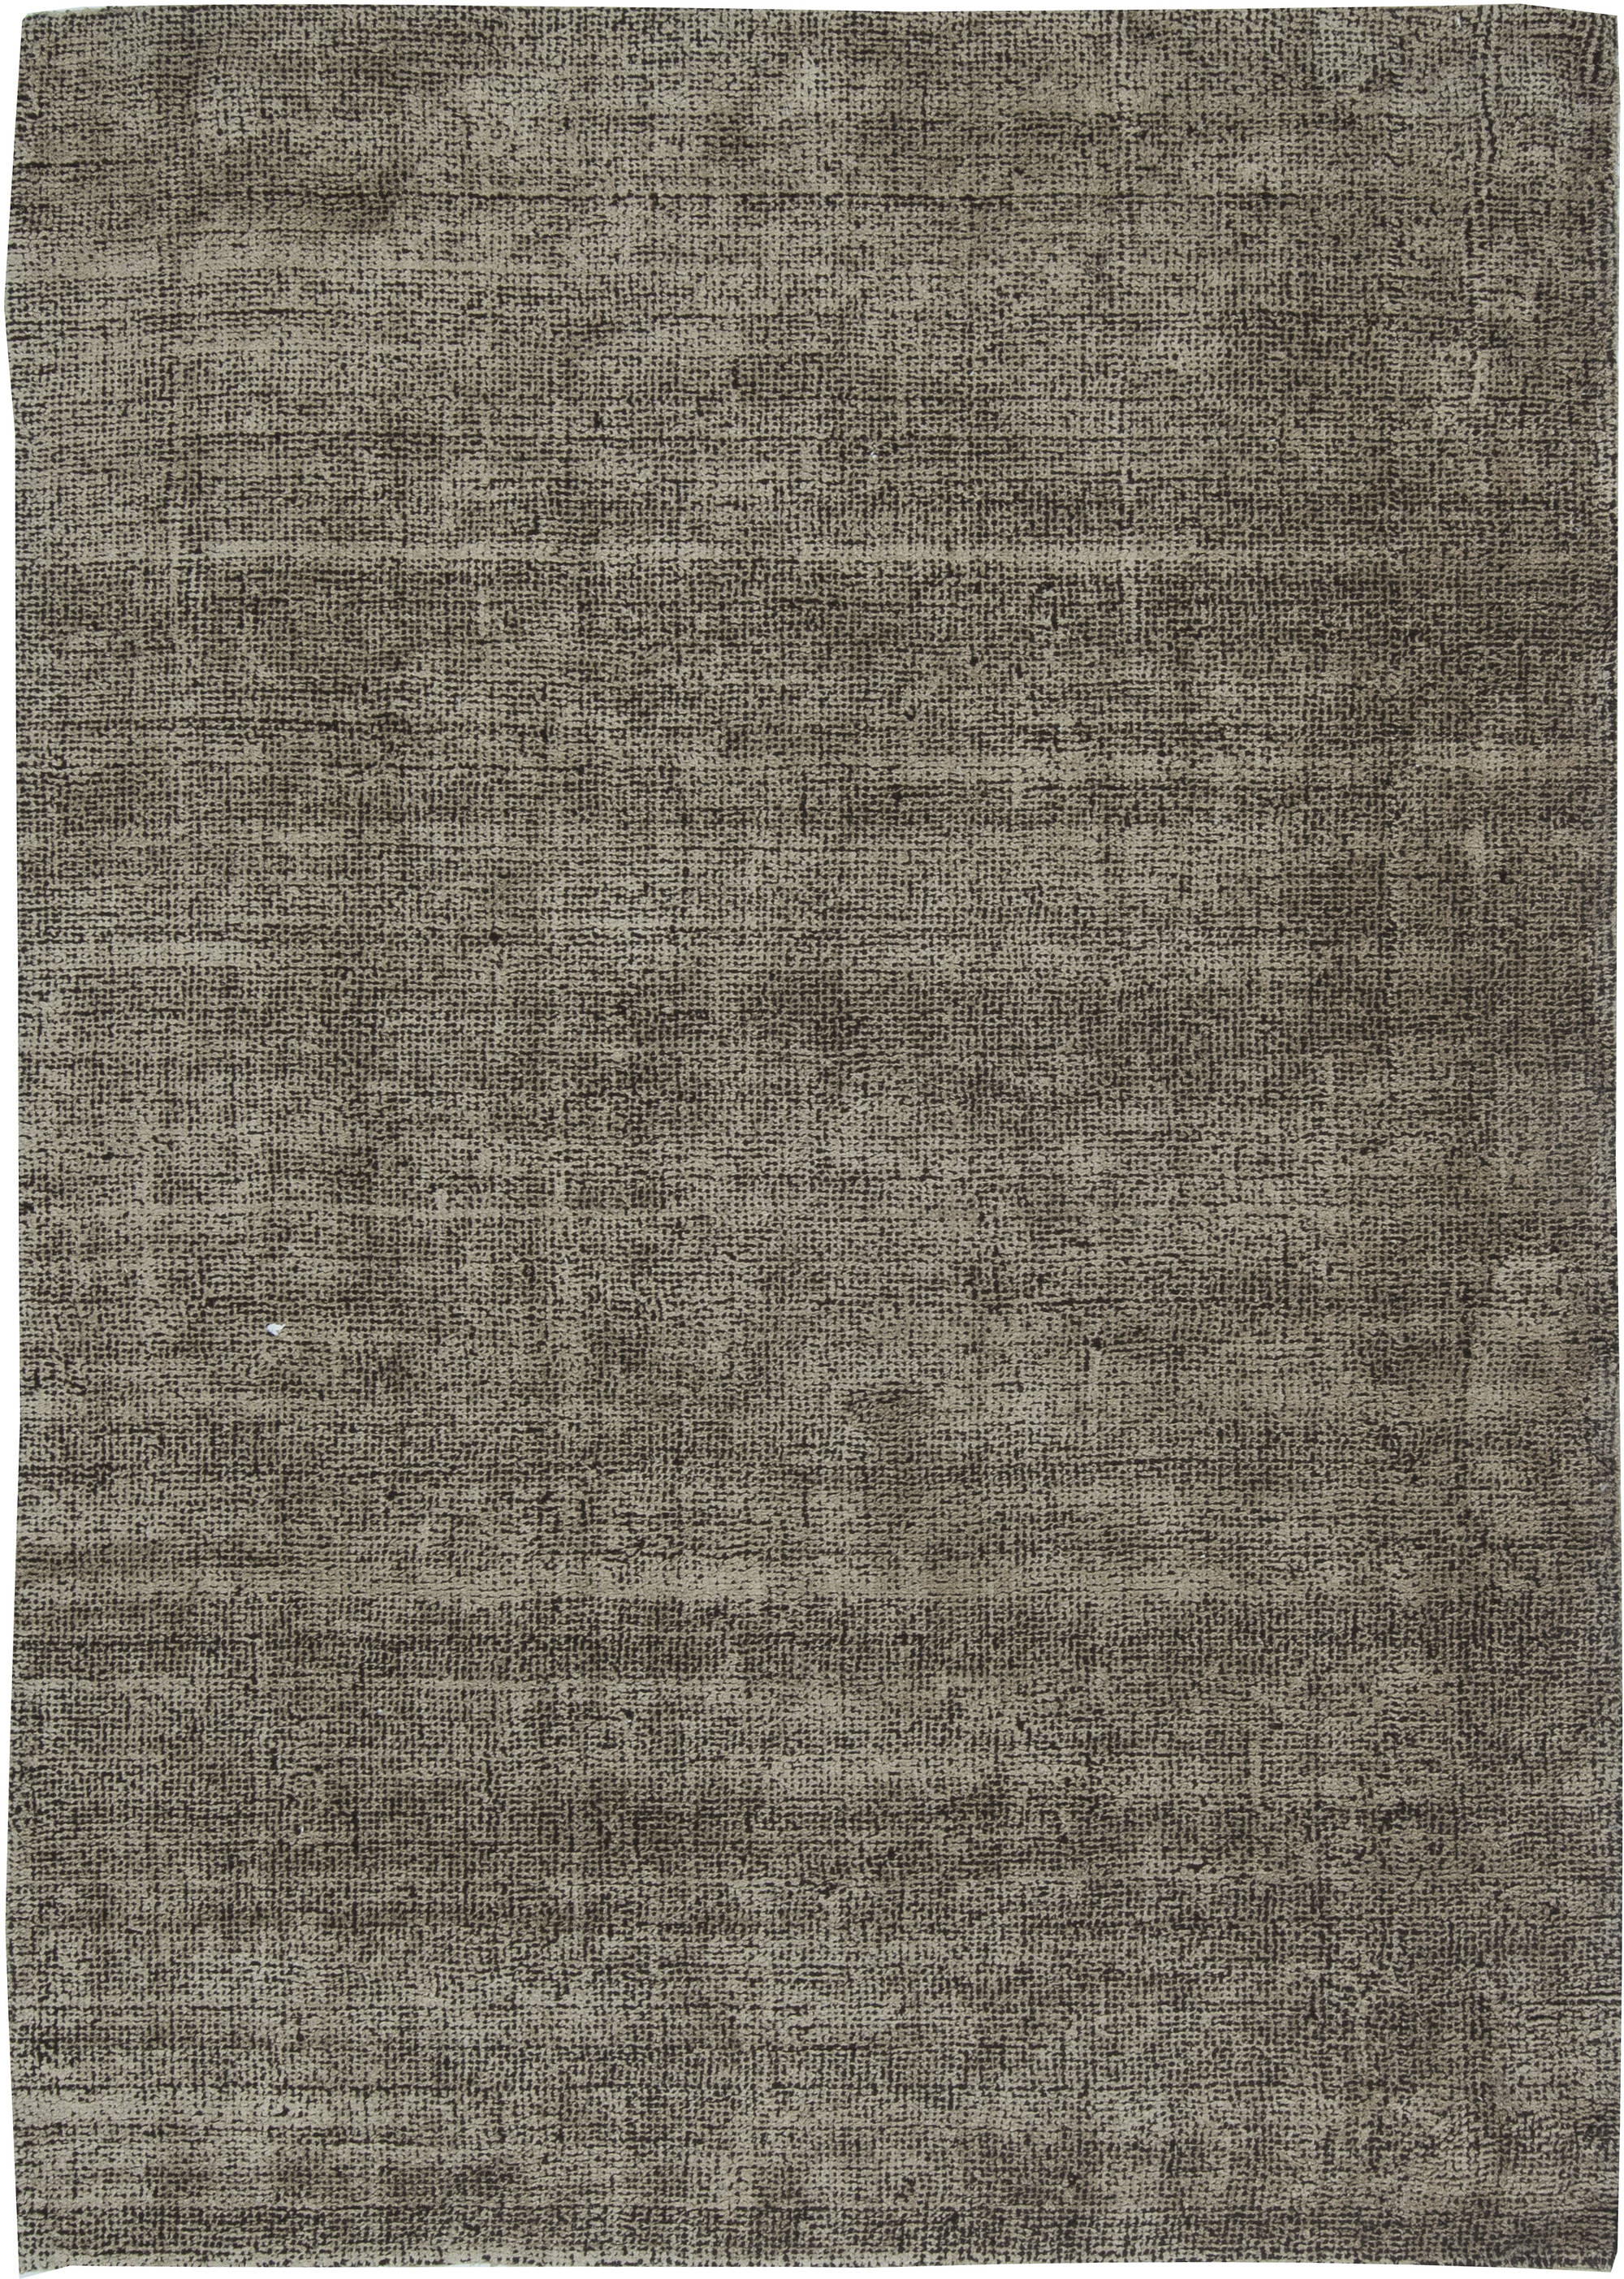 Contemporary Rug N11531